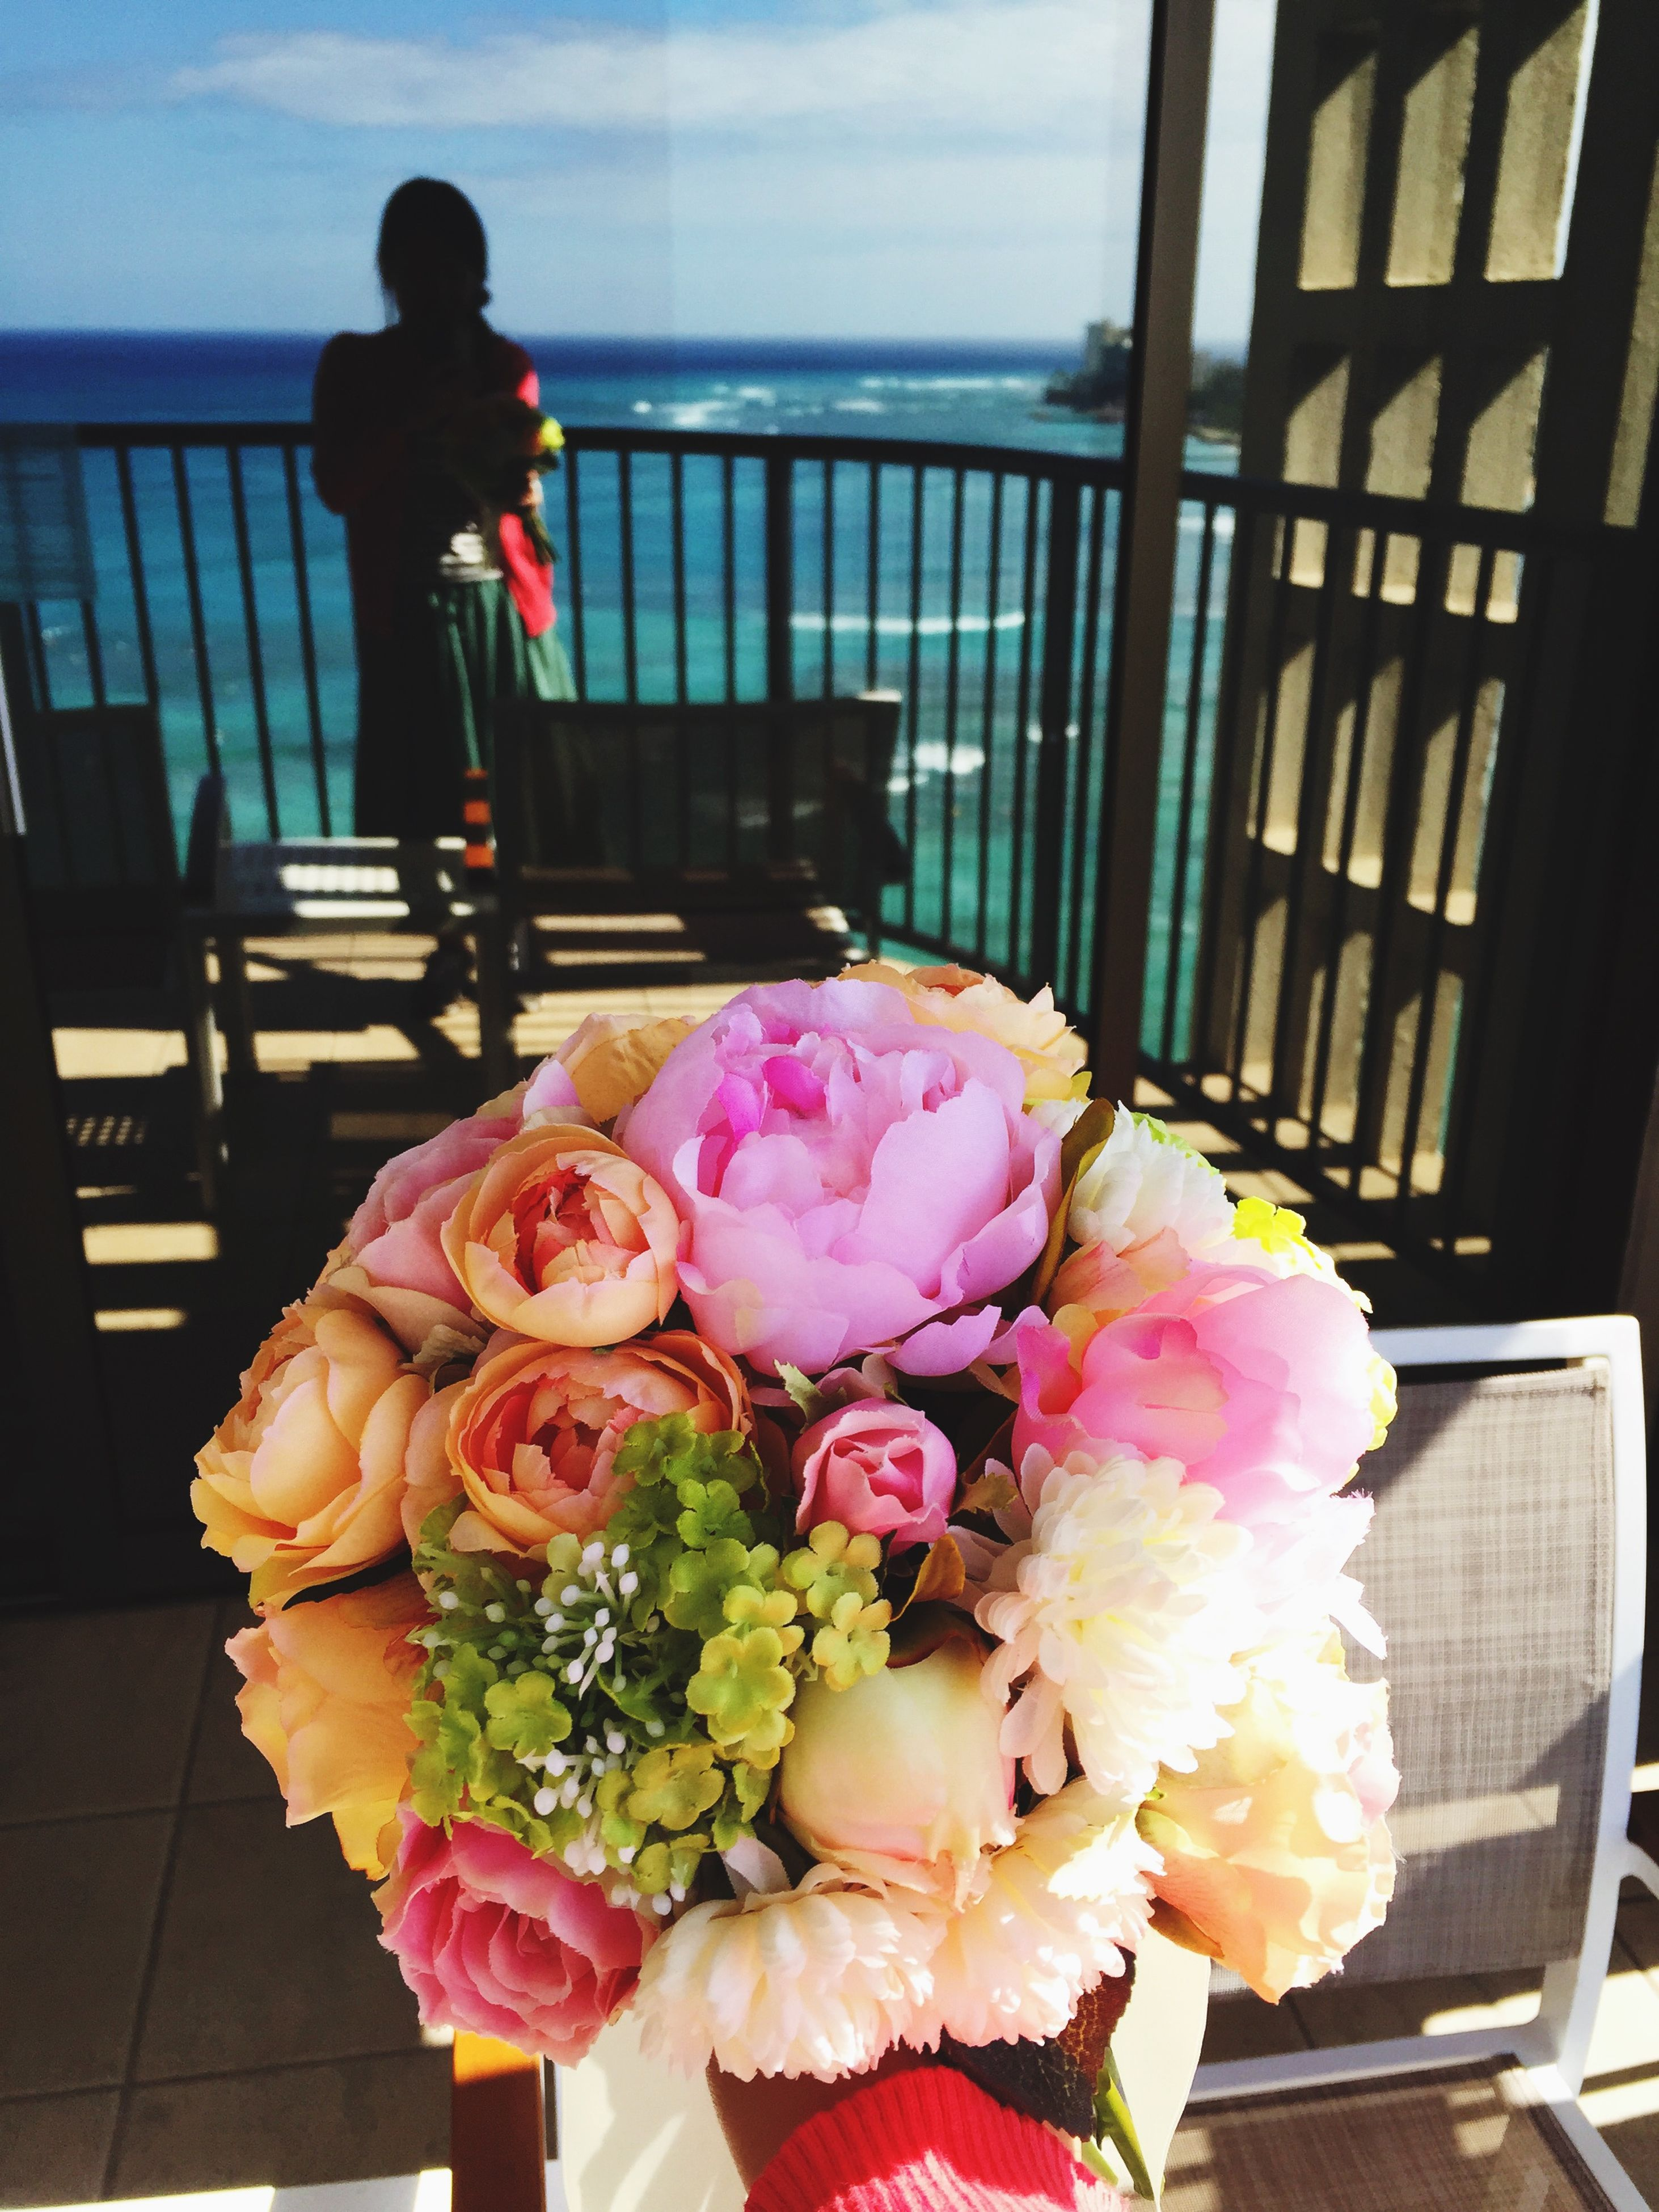 flower, freshness, rose - flower, pink color, fragility, petal, bouquet, flower head, indoors, day, incidental people, rose, holding, lifestyles, close-up, nature, focus on foreground